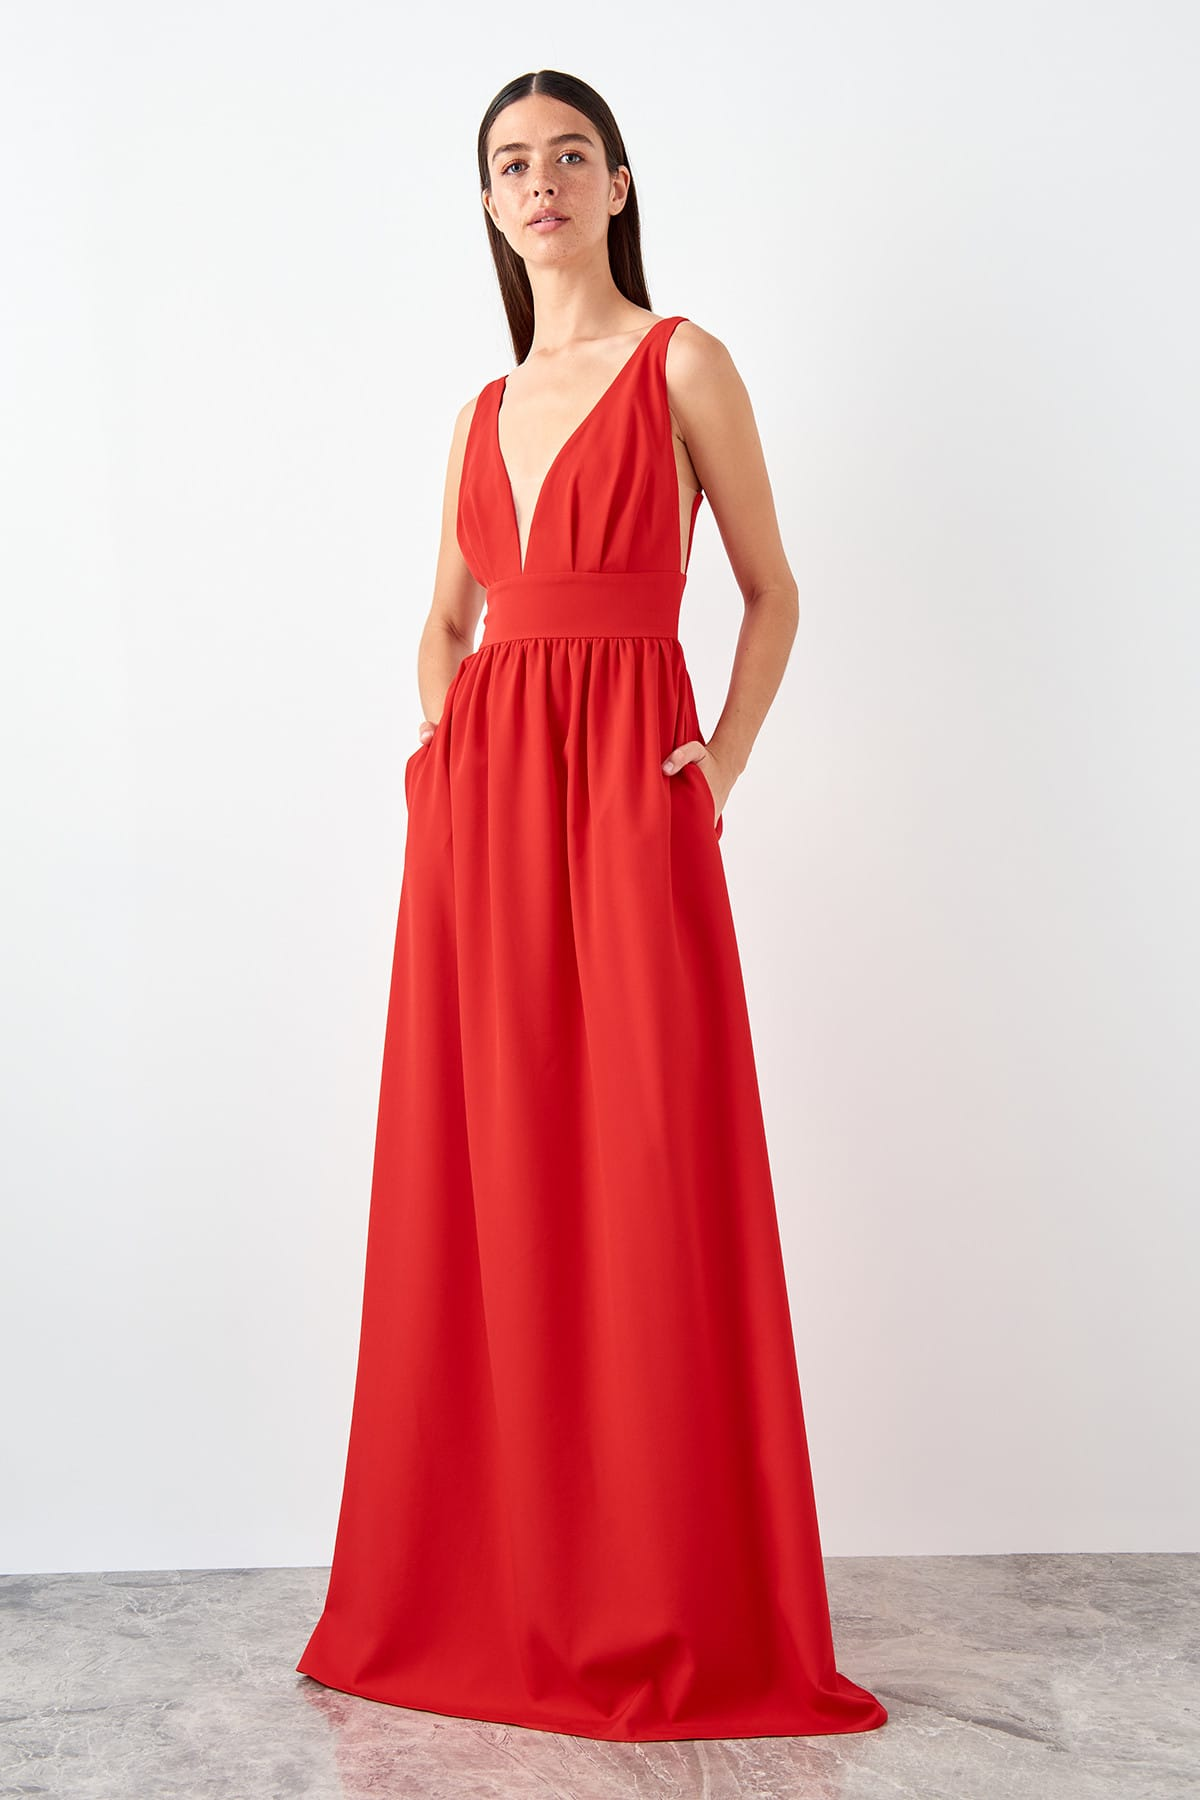 Trendyol Low-Cut Detailed Evening Dress TPRSS19AE0074